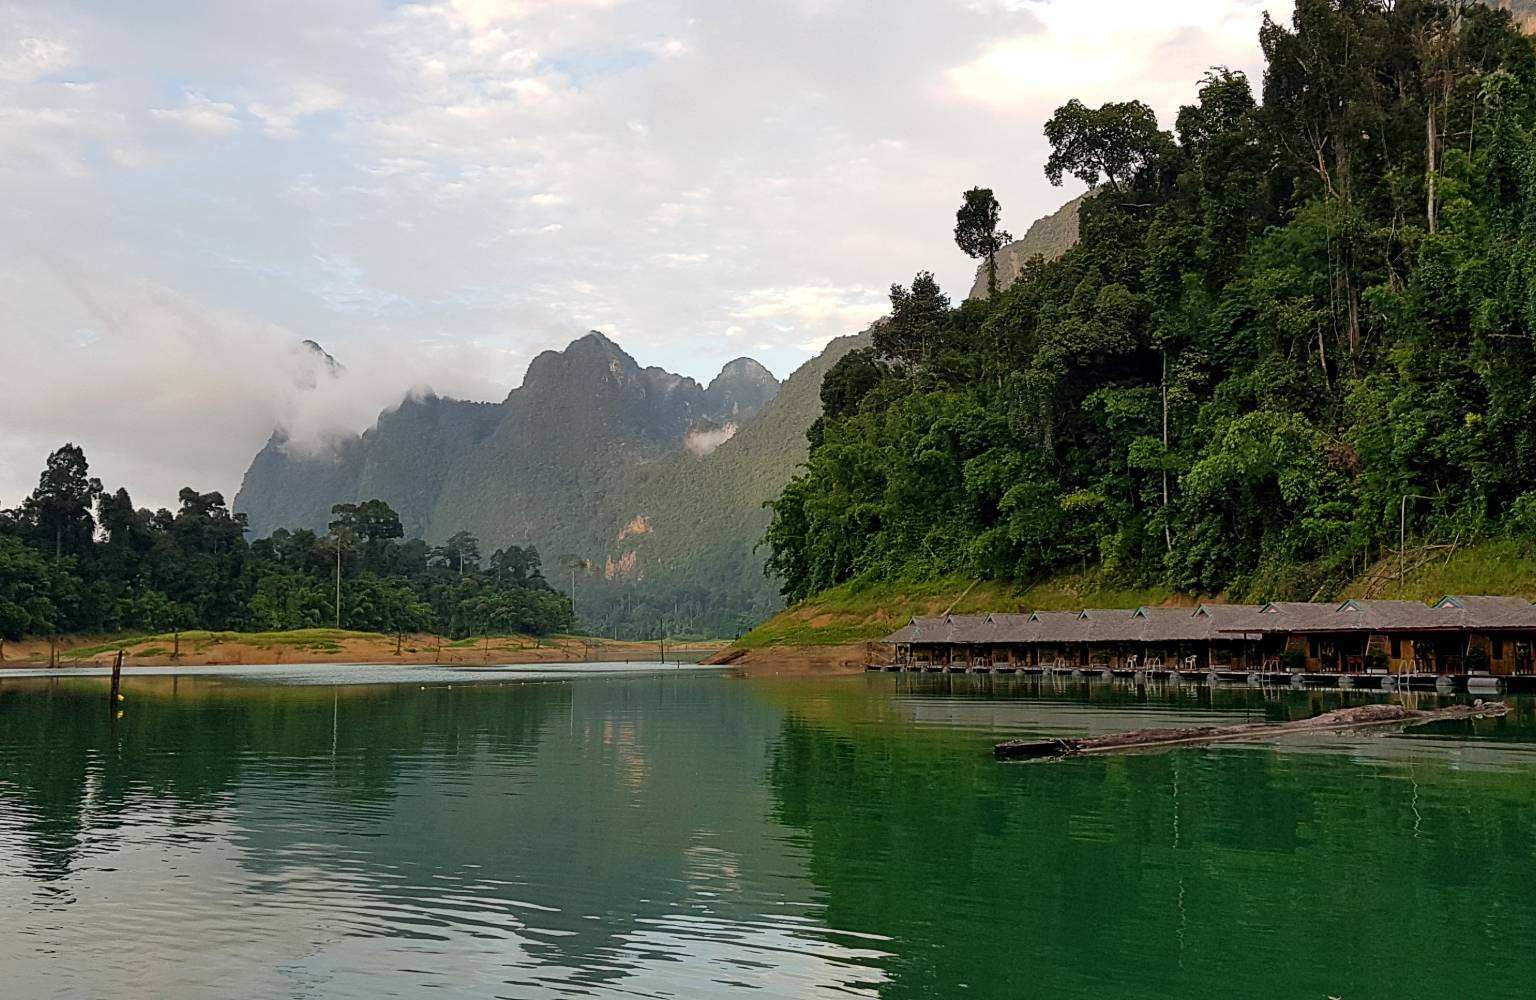 Clouds around mountains, rainy season in Khao Sok